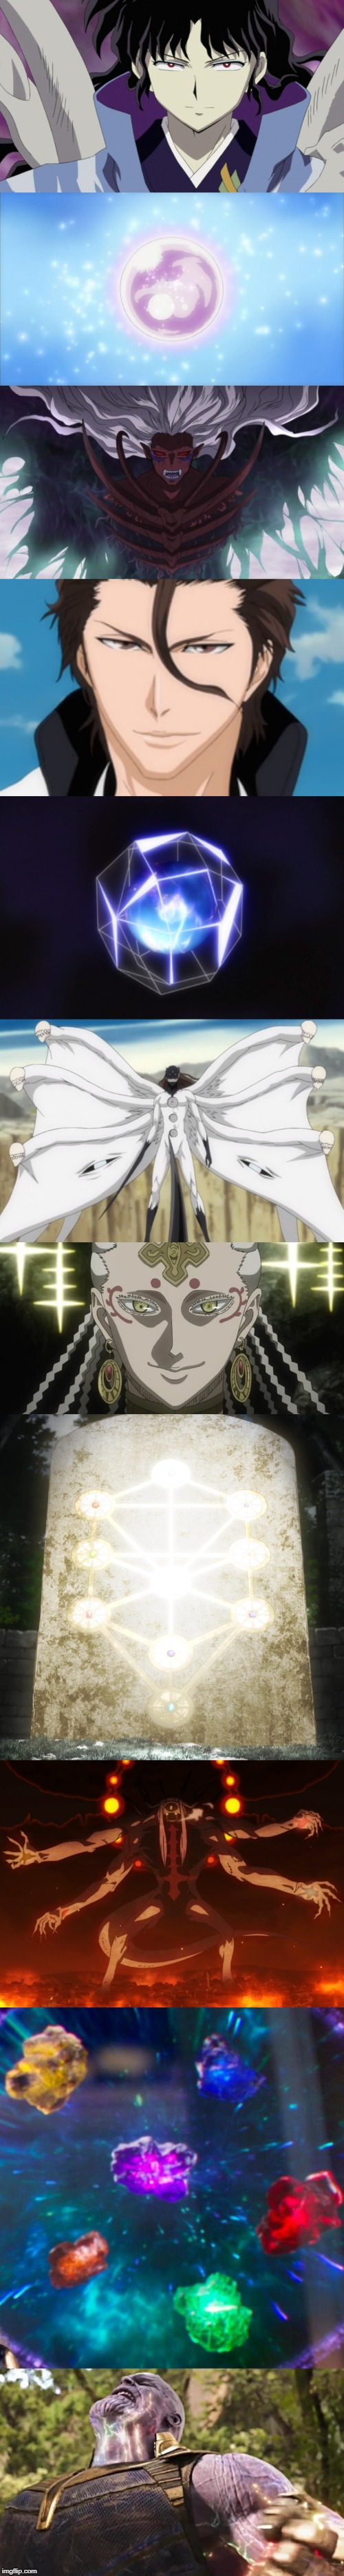 They say jewelry is a girl's best friend, well... | image tagged in anime,animeme,anime meme,inuyasha,bleach,thanos | made w/ Imgflip meme maker